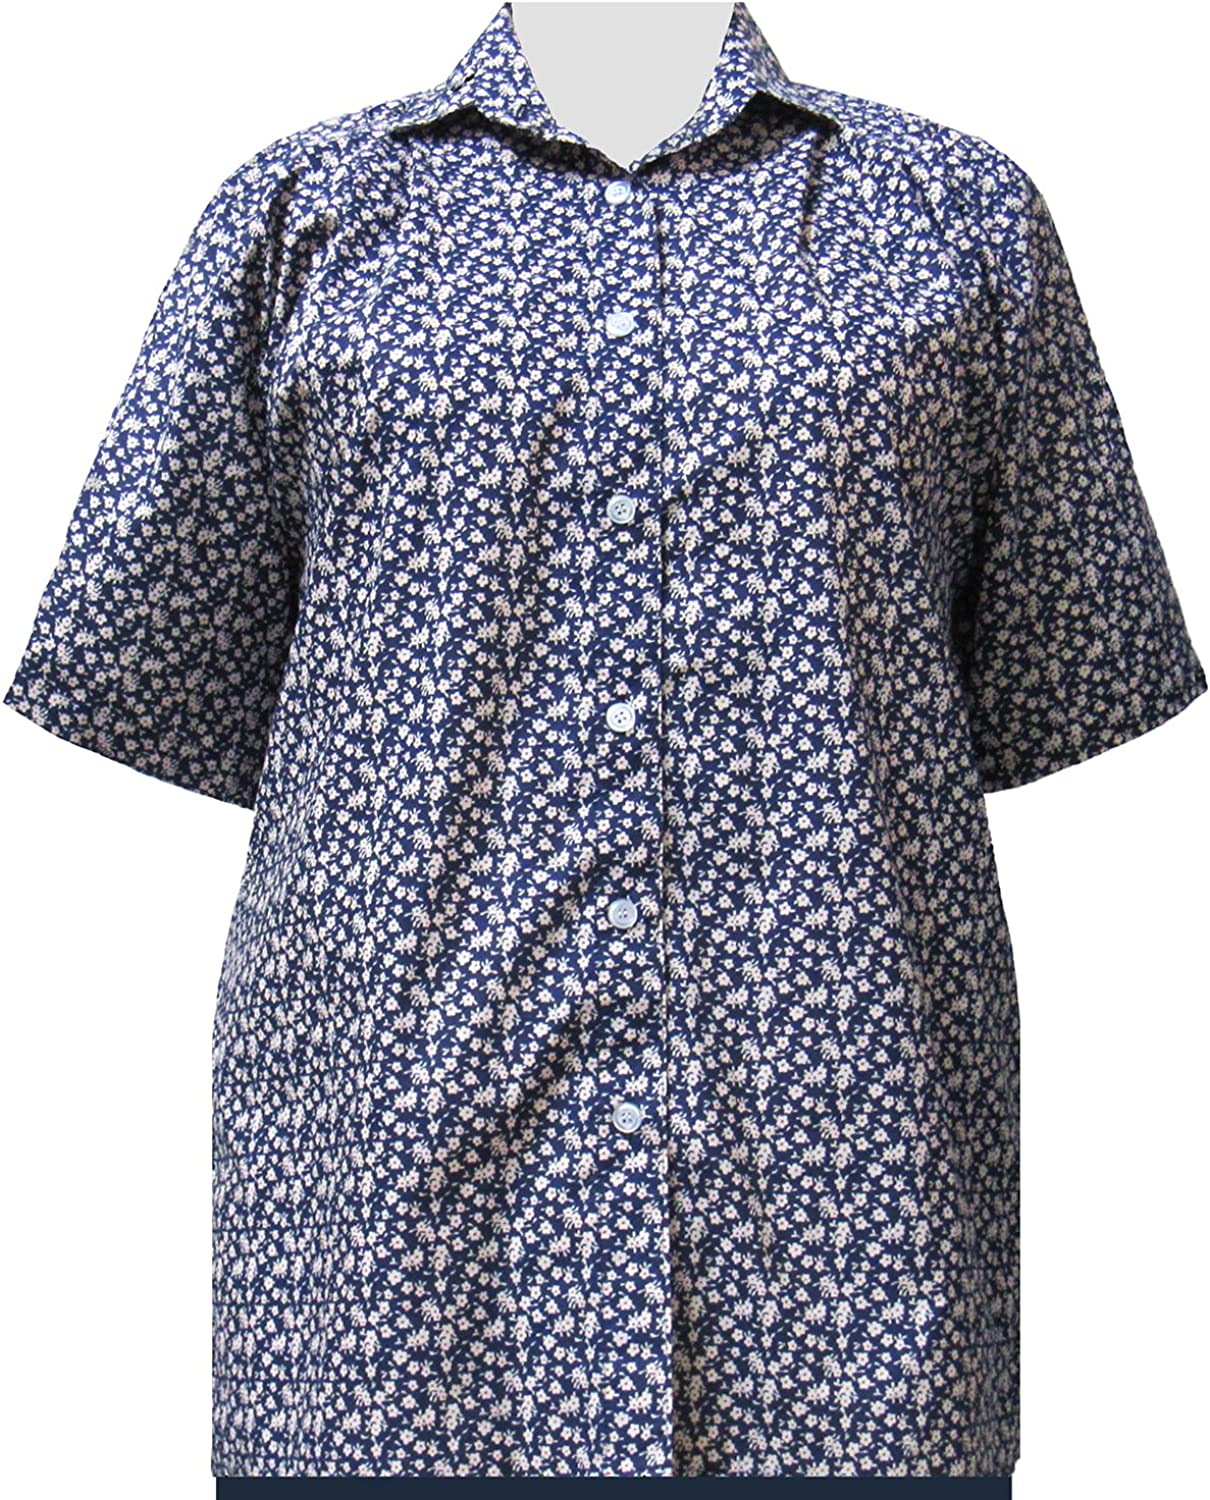 A Personal Touch bluee Ditsy Women's Plus Size Blouse